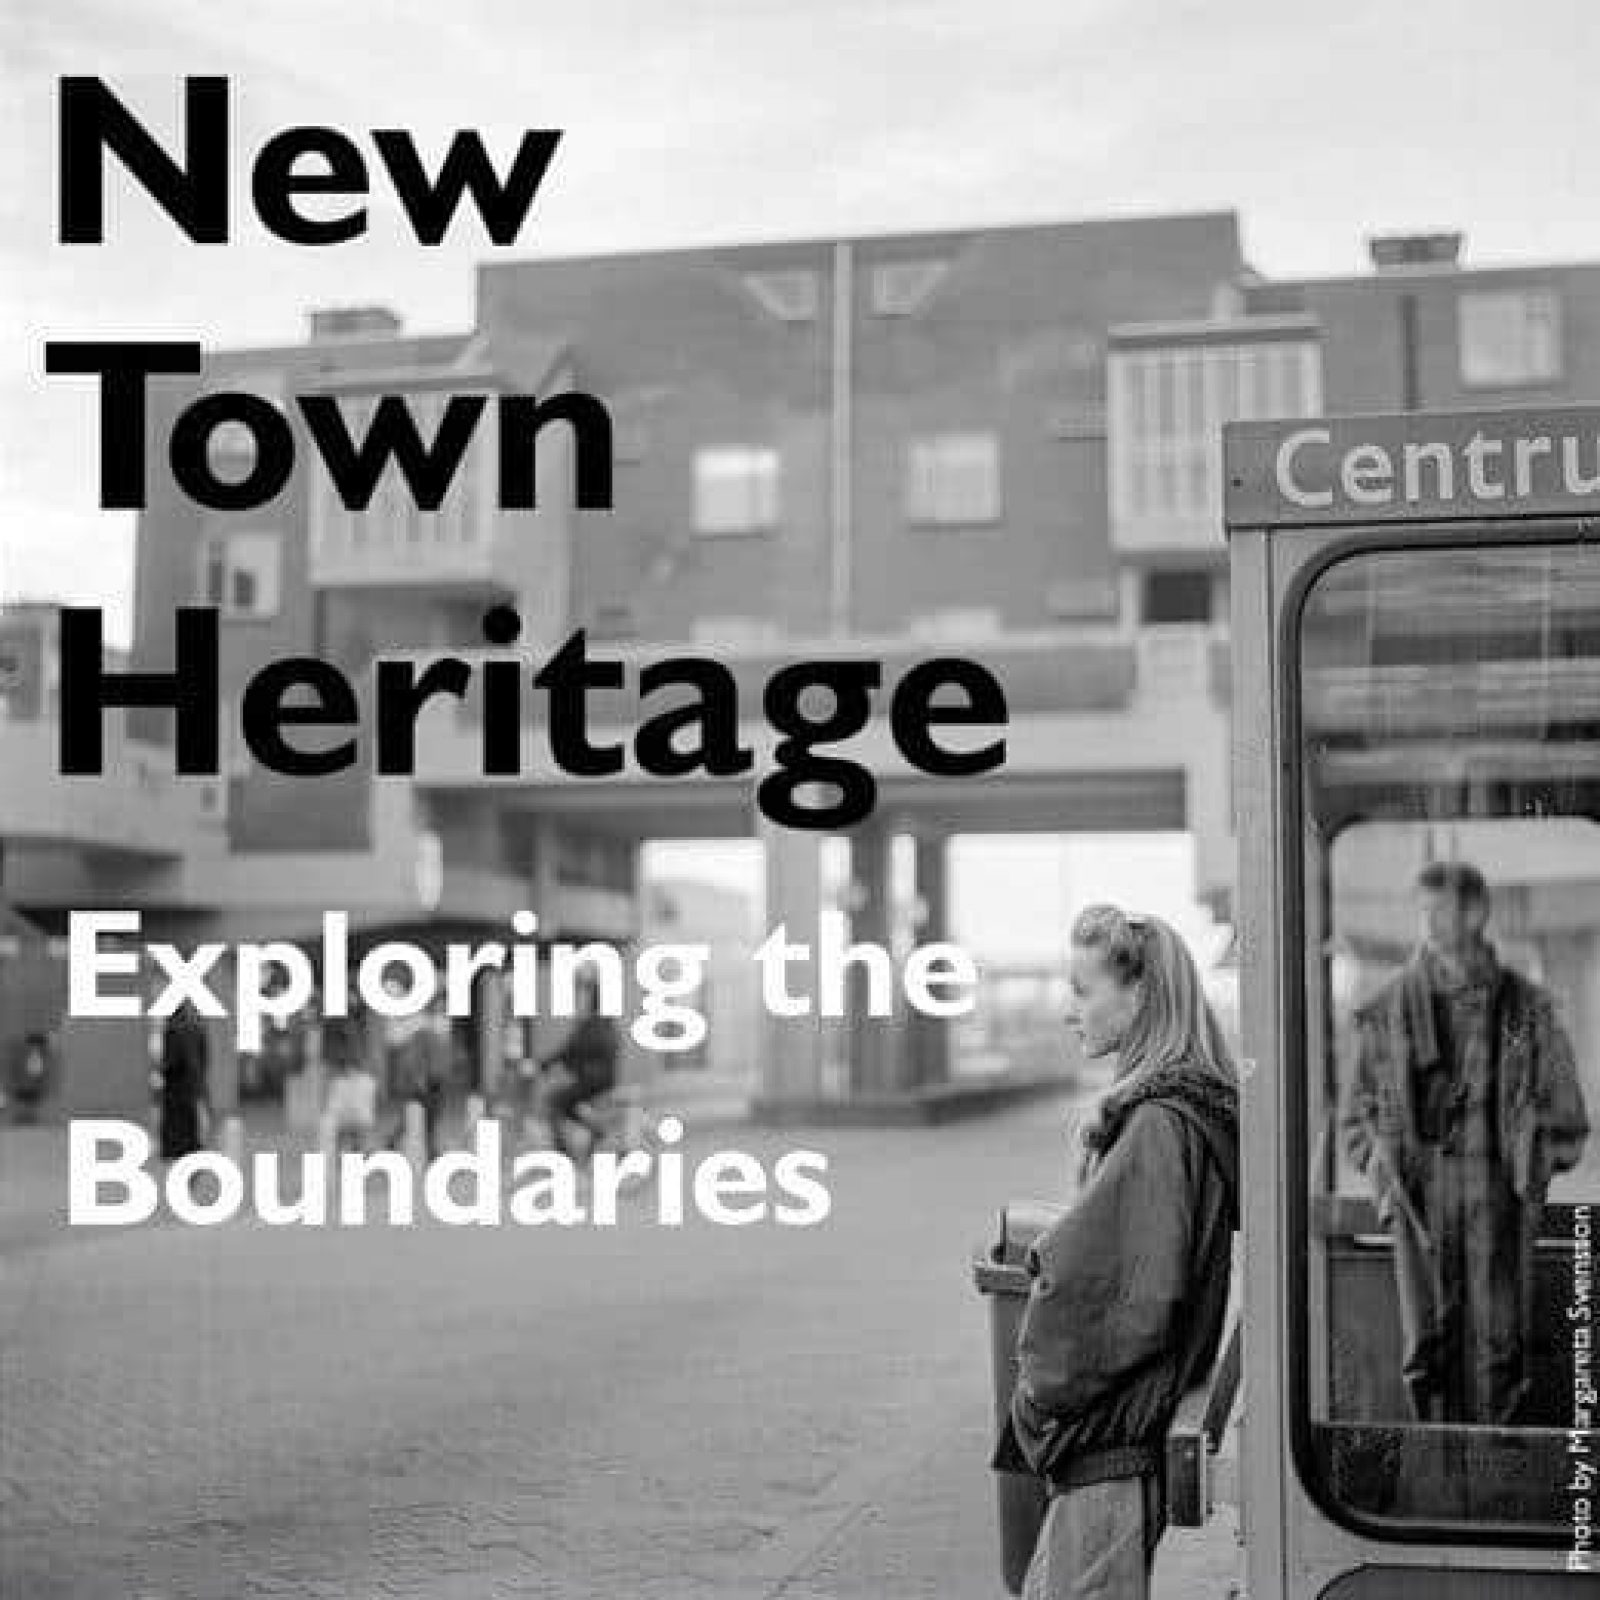 New Towns Heritage Exploring The Boundaries